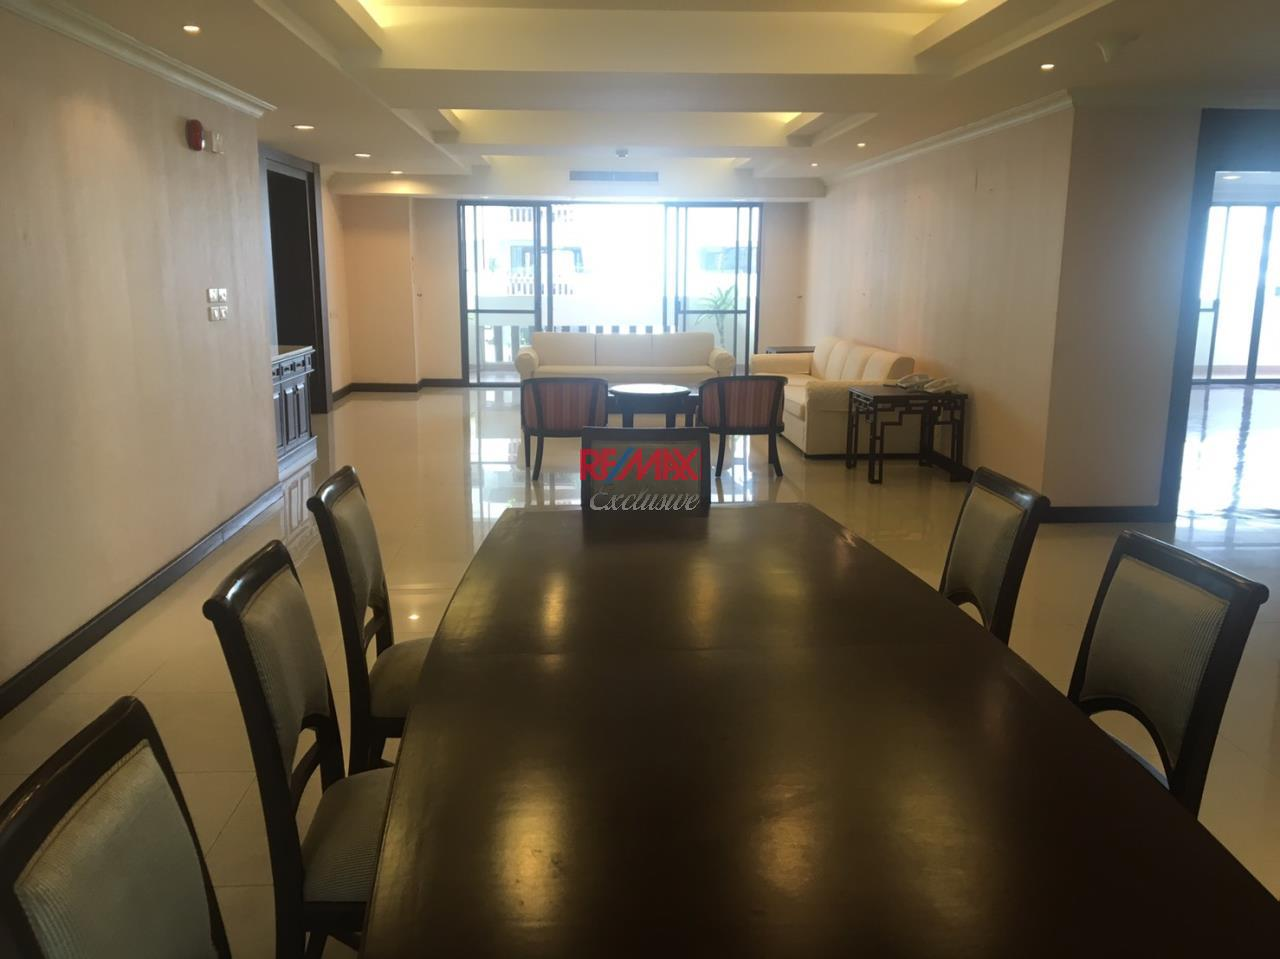 RE/MAX Exclusive Agency's Hawaii Tower, 3 Bedroom, 330 Sqm., Fully-Furnished, Special Price for RENT !!! 8